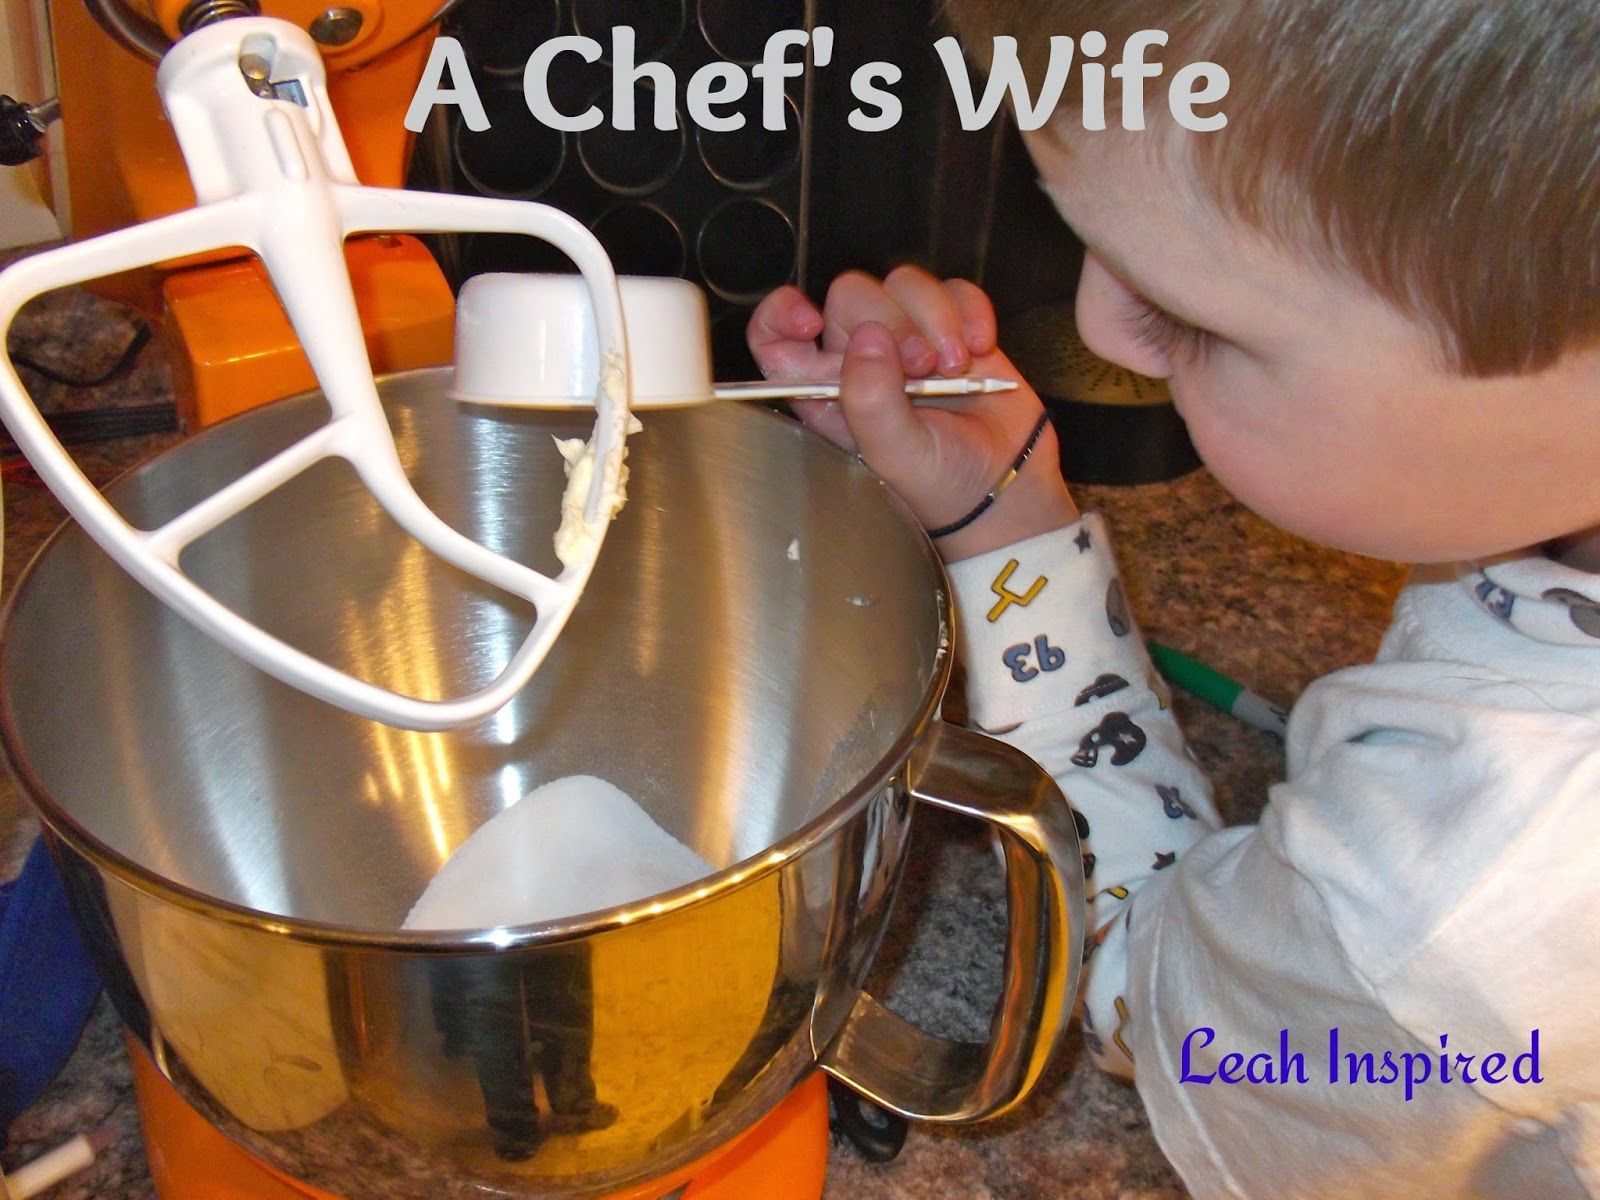 Leah Inspired: A Chef's Wife